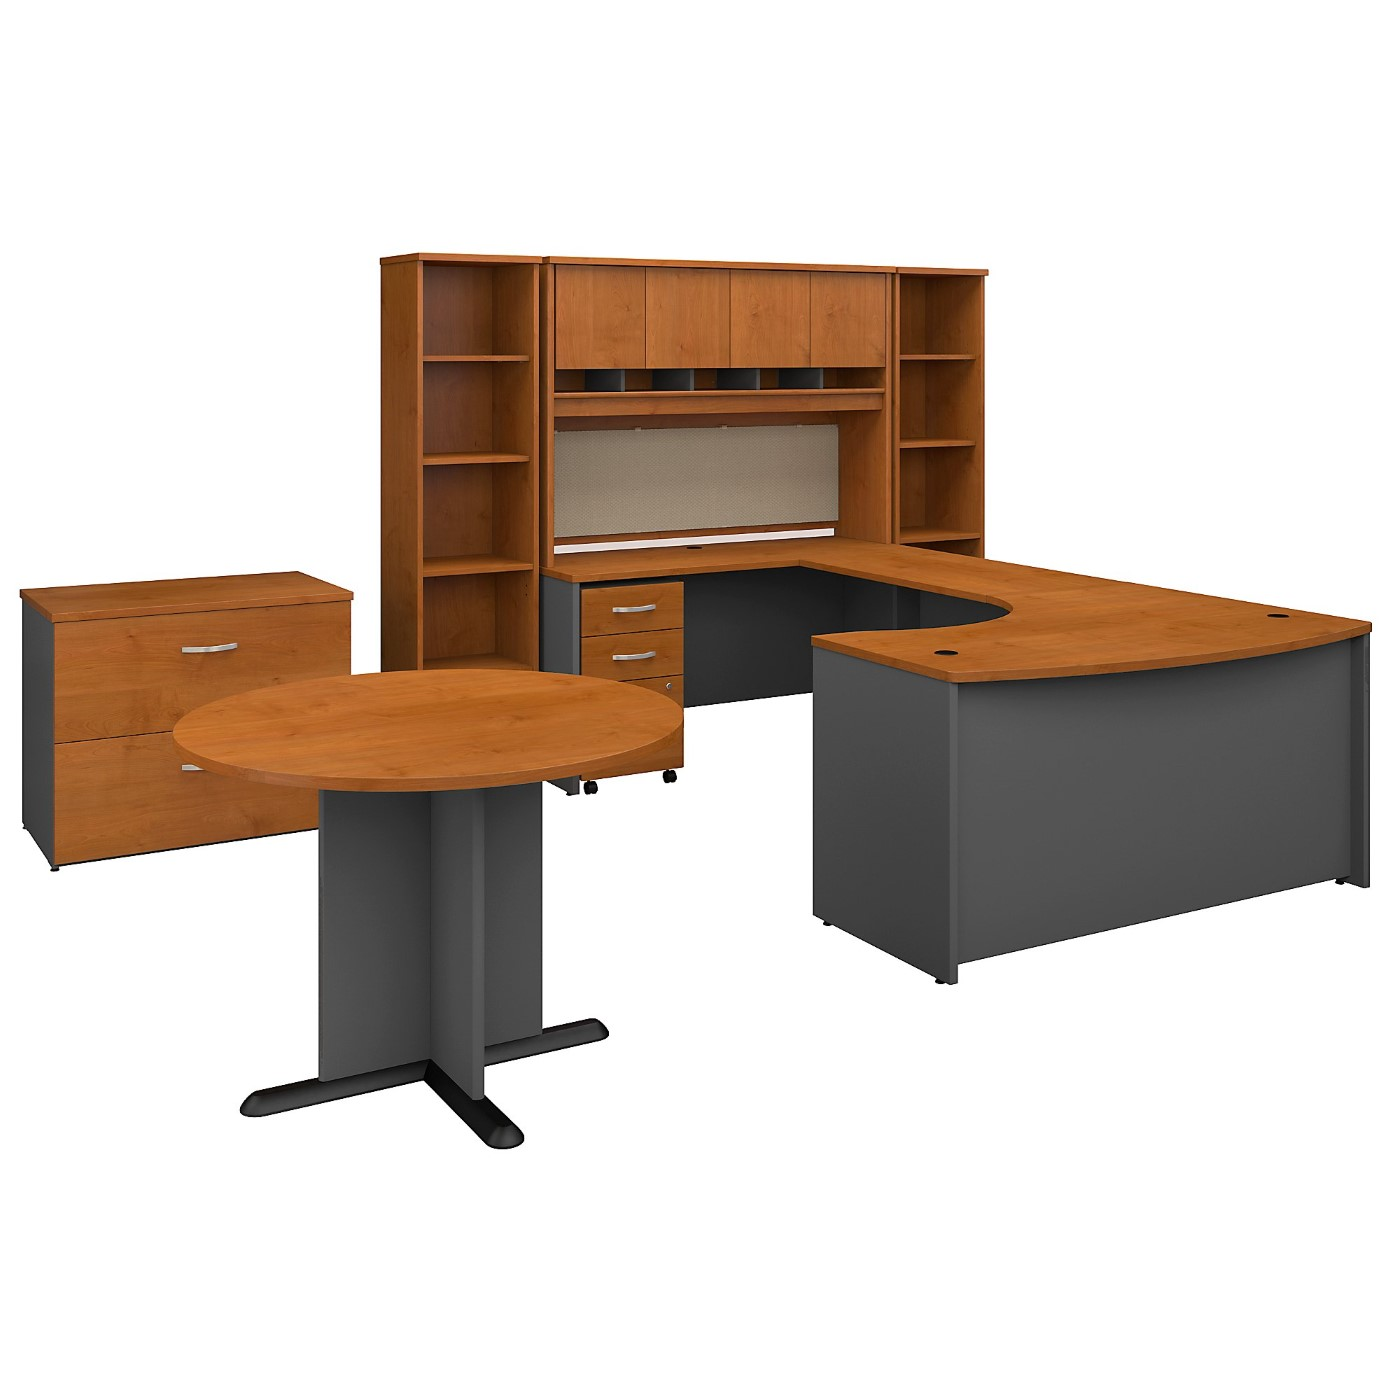 BUSH BUSINESS FURNITURE SERIES C 60W LEFT HANDED BOW FRONT U SHAPED DESK WITH STORAGE AND CONFERENCE TABLE. FREE SHIPPING SALE DEDUCT 10% MORE ENTER '10percent' IN COUPON CODE BOX WHILE CHECKING OUT.